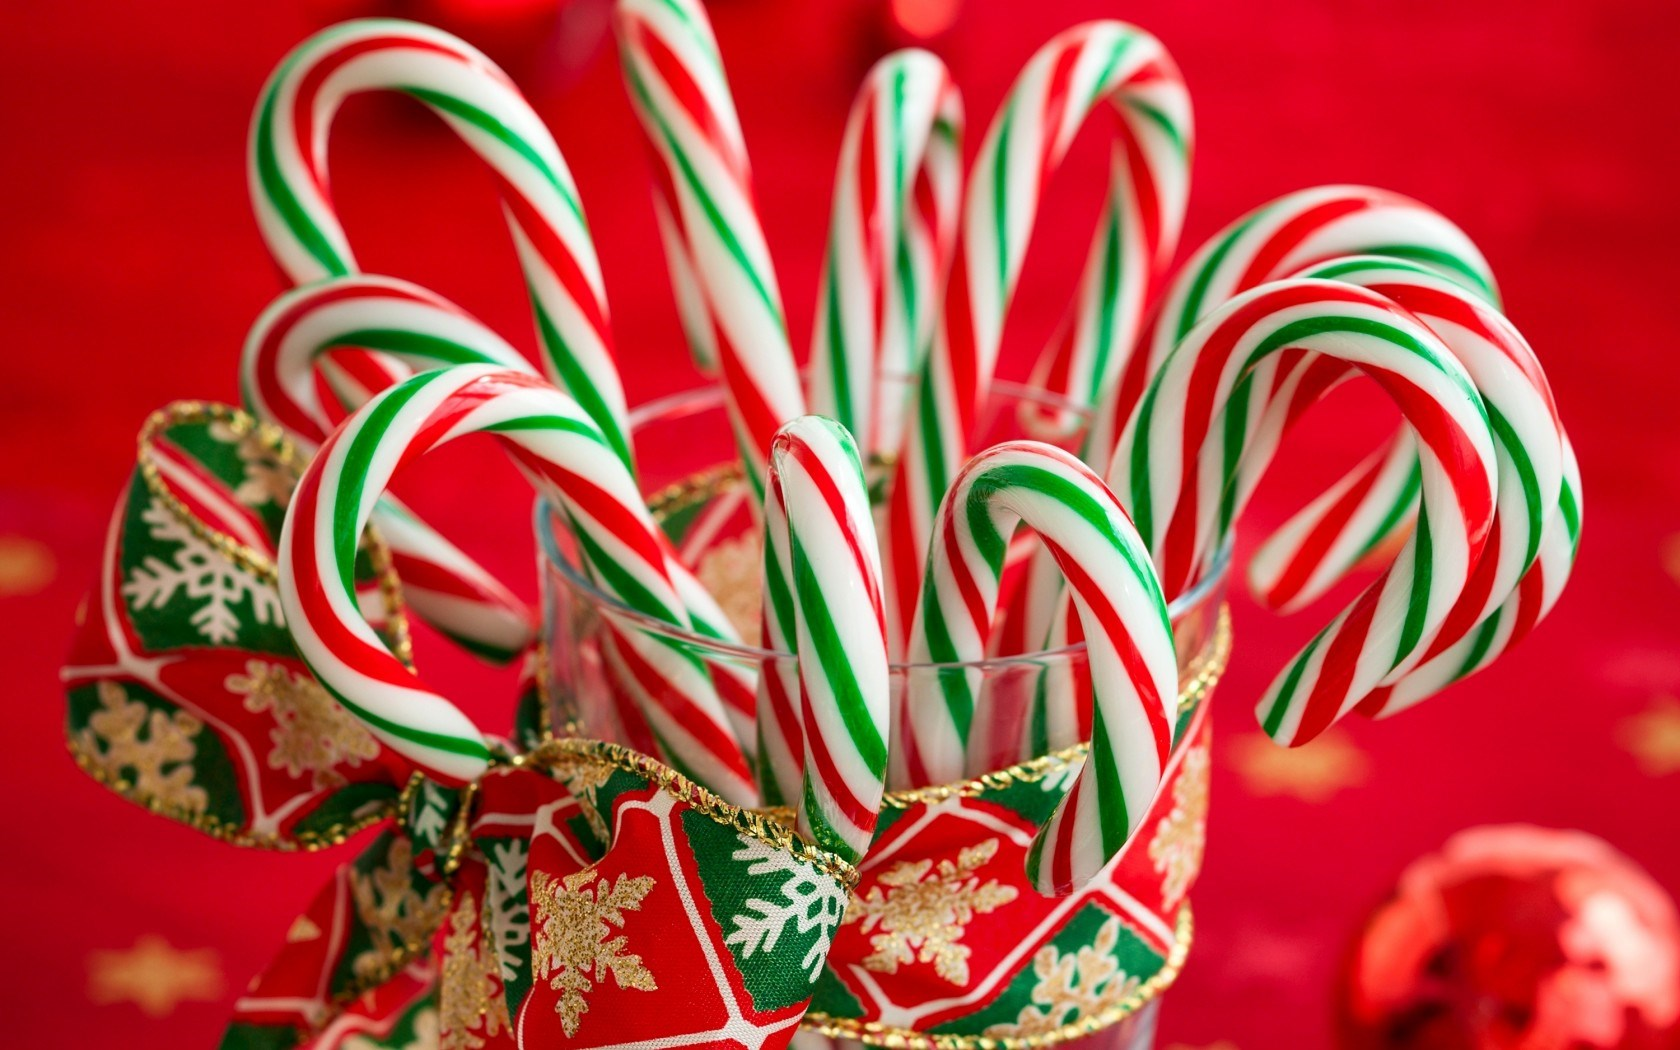 candy canes striped christmas new year holiday hd wallpaperjpg 1680x1050